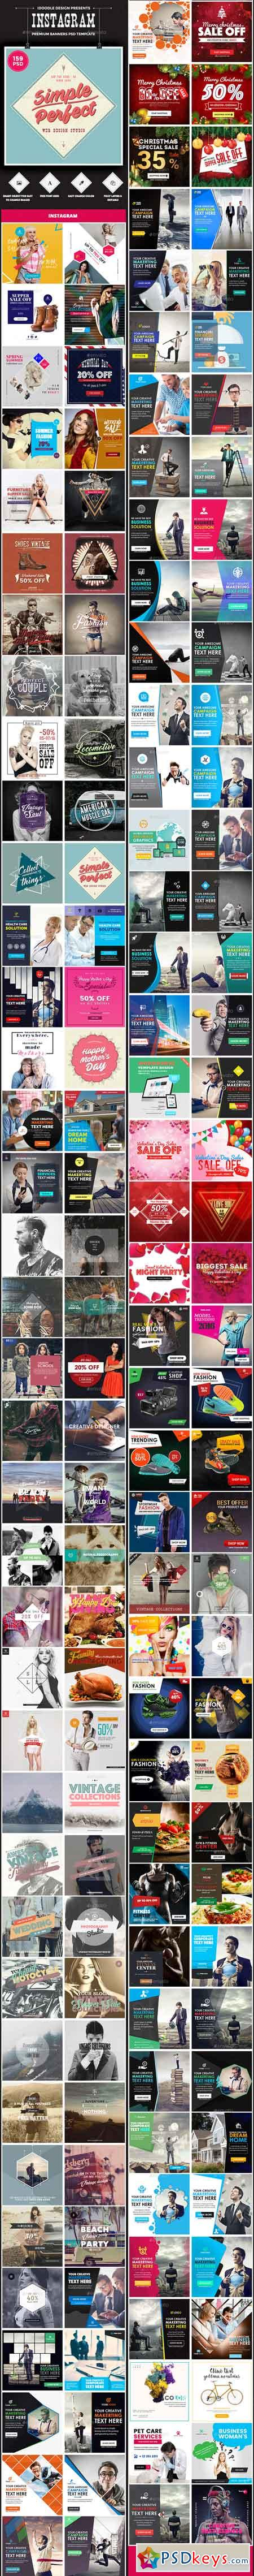 Promotion Instagram Banners Ads - 159 PSD Bundle 13686890